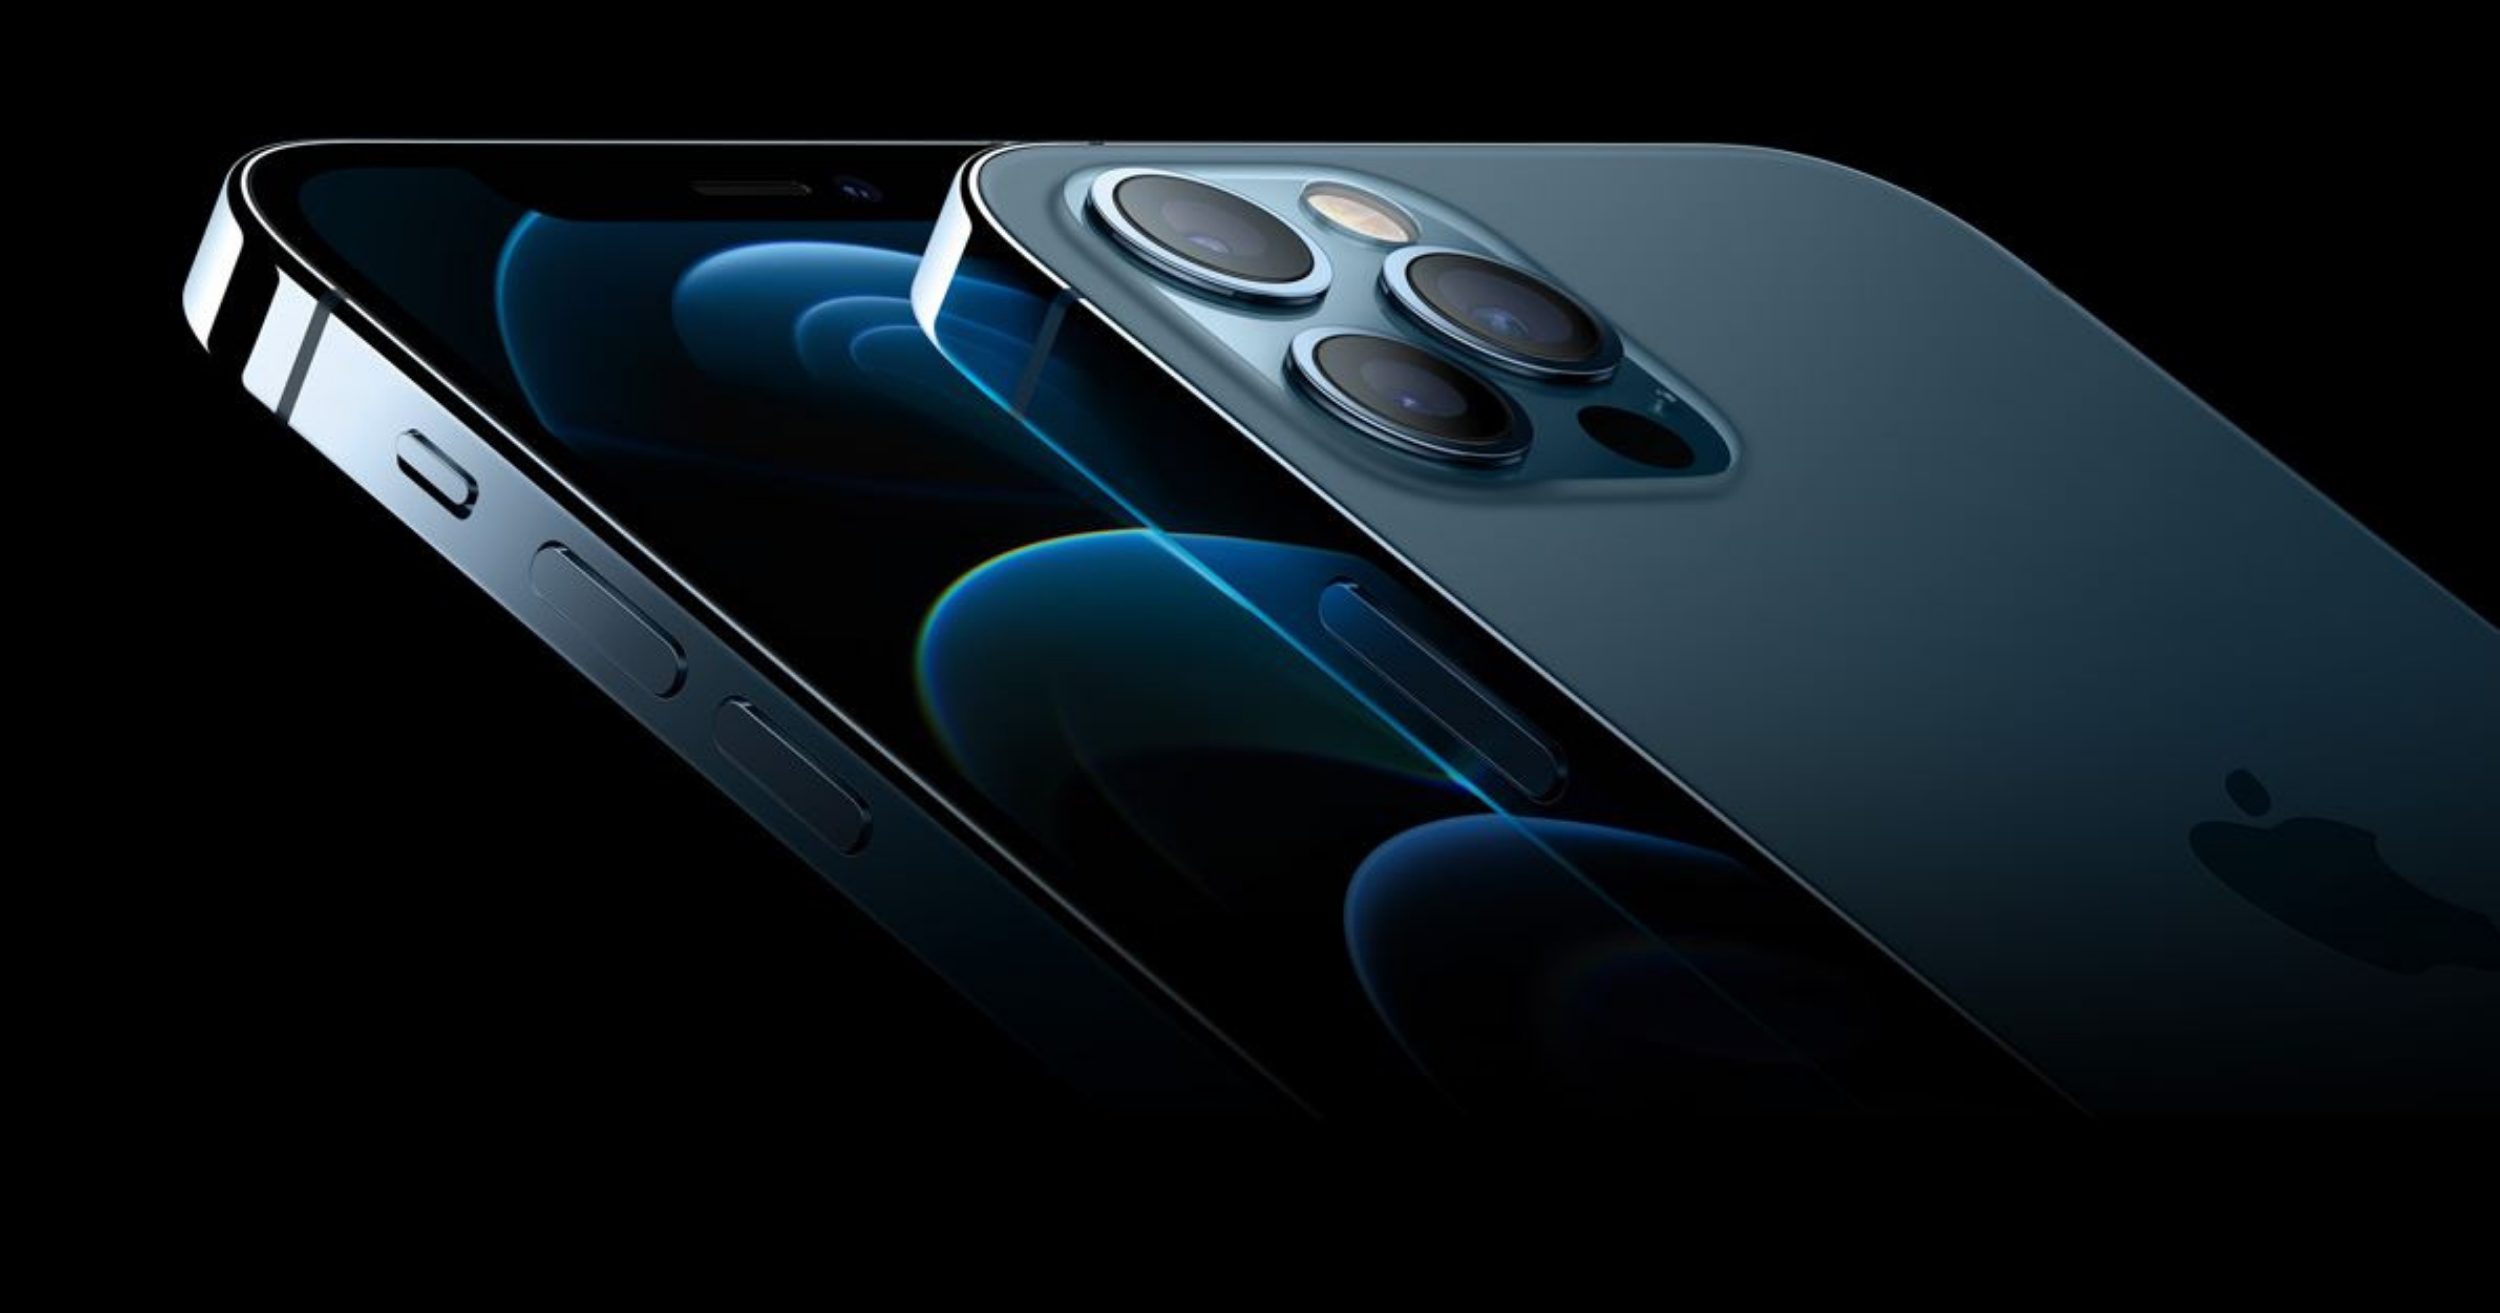 apple-iphone-pricelist-in-the-philippines-iphone-12-enters-the-market